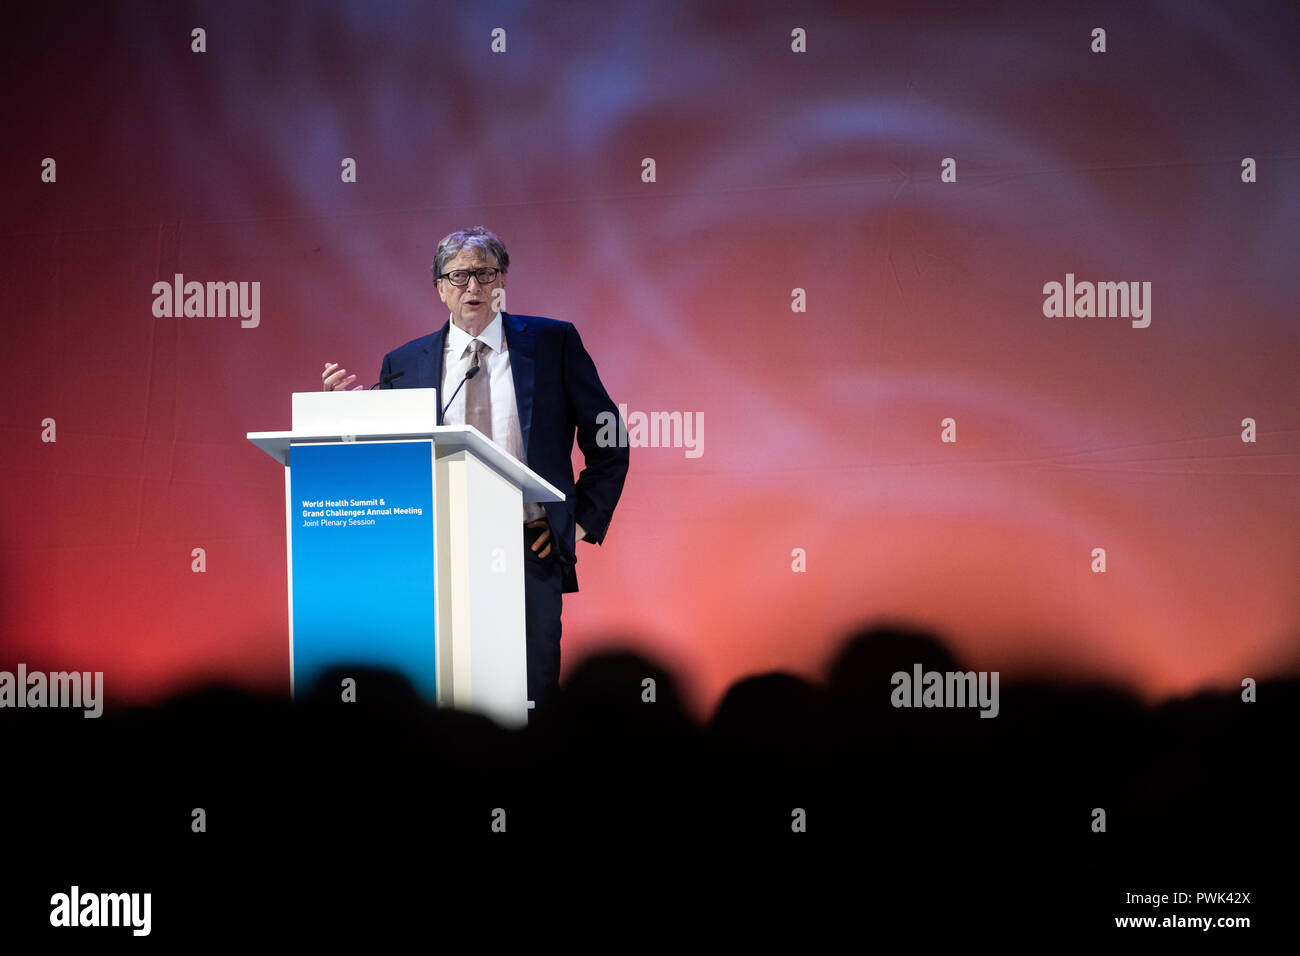 Berlin, Germany. 16 October 2018, Berlin: 16 October 2018, Germany, Berlin: Bill Gates, founder of Microsoft and the Bill & Melinda Gates Foundation, speaking at the closing event of the World Health Summit 2018. 2,000 participants and 300 speakers from 100 countries discussed pressing issues of global health care and the prevention of preventable diseases at the three-day event. Photo: Bernd von Jutrczenka/dpa Credit: dpa picture alliance/Alamy Live News - Stock Image